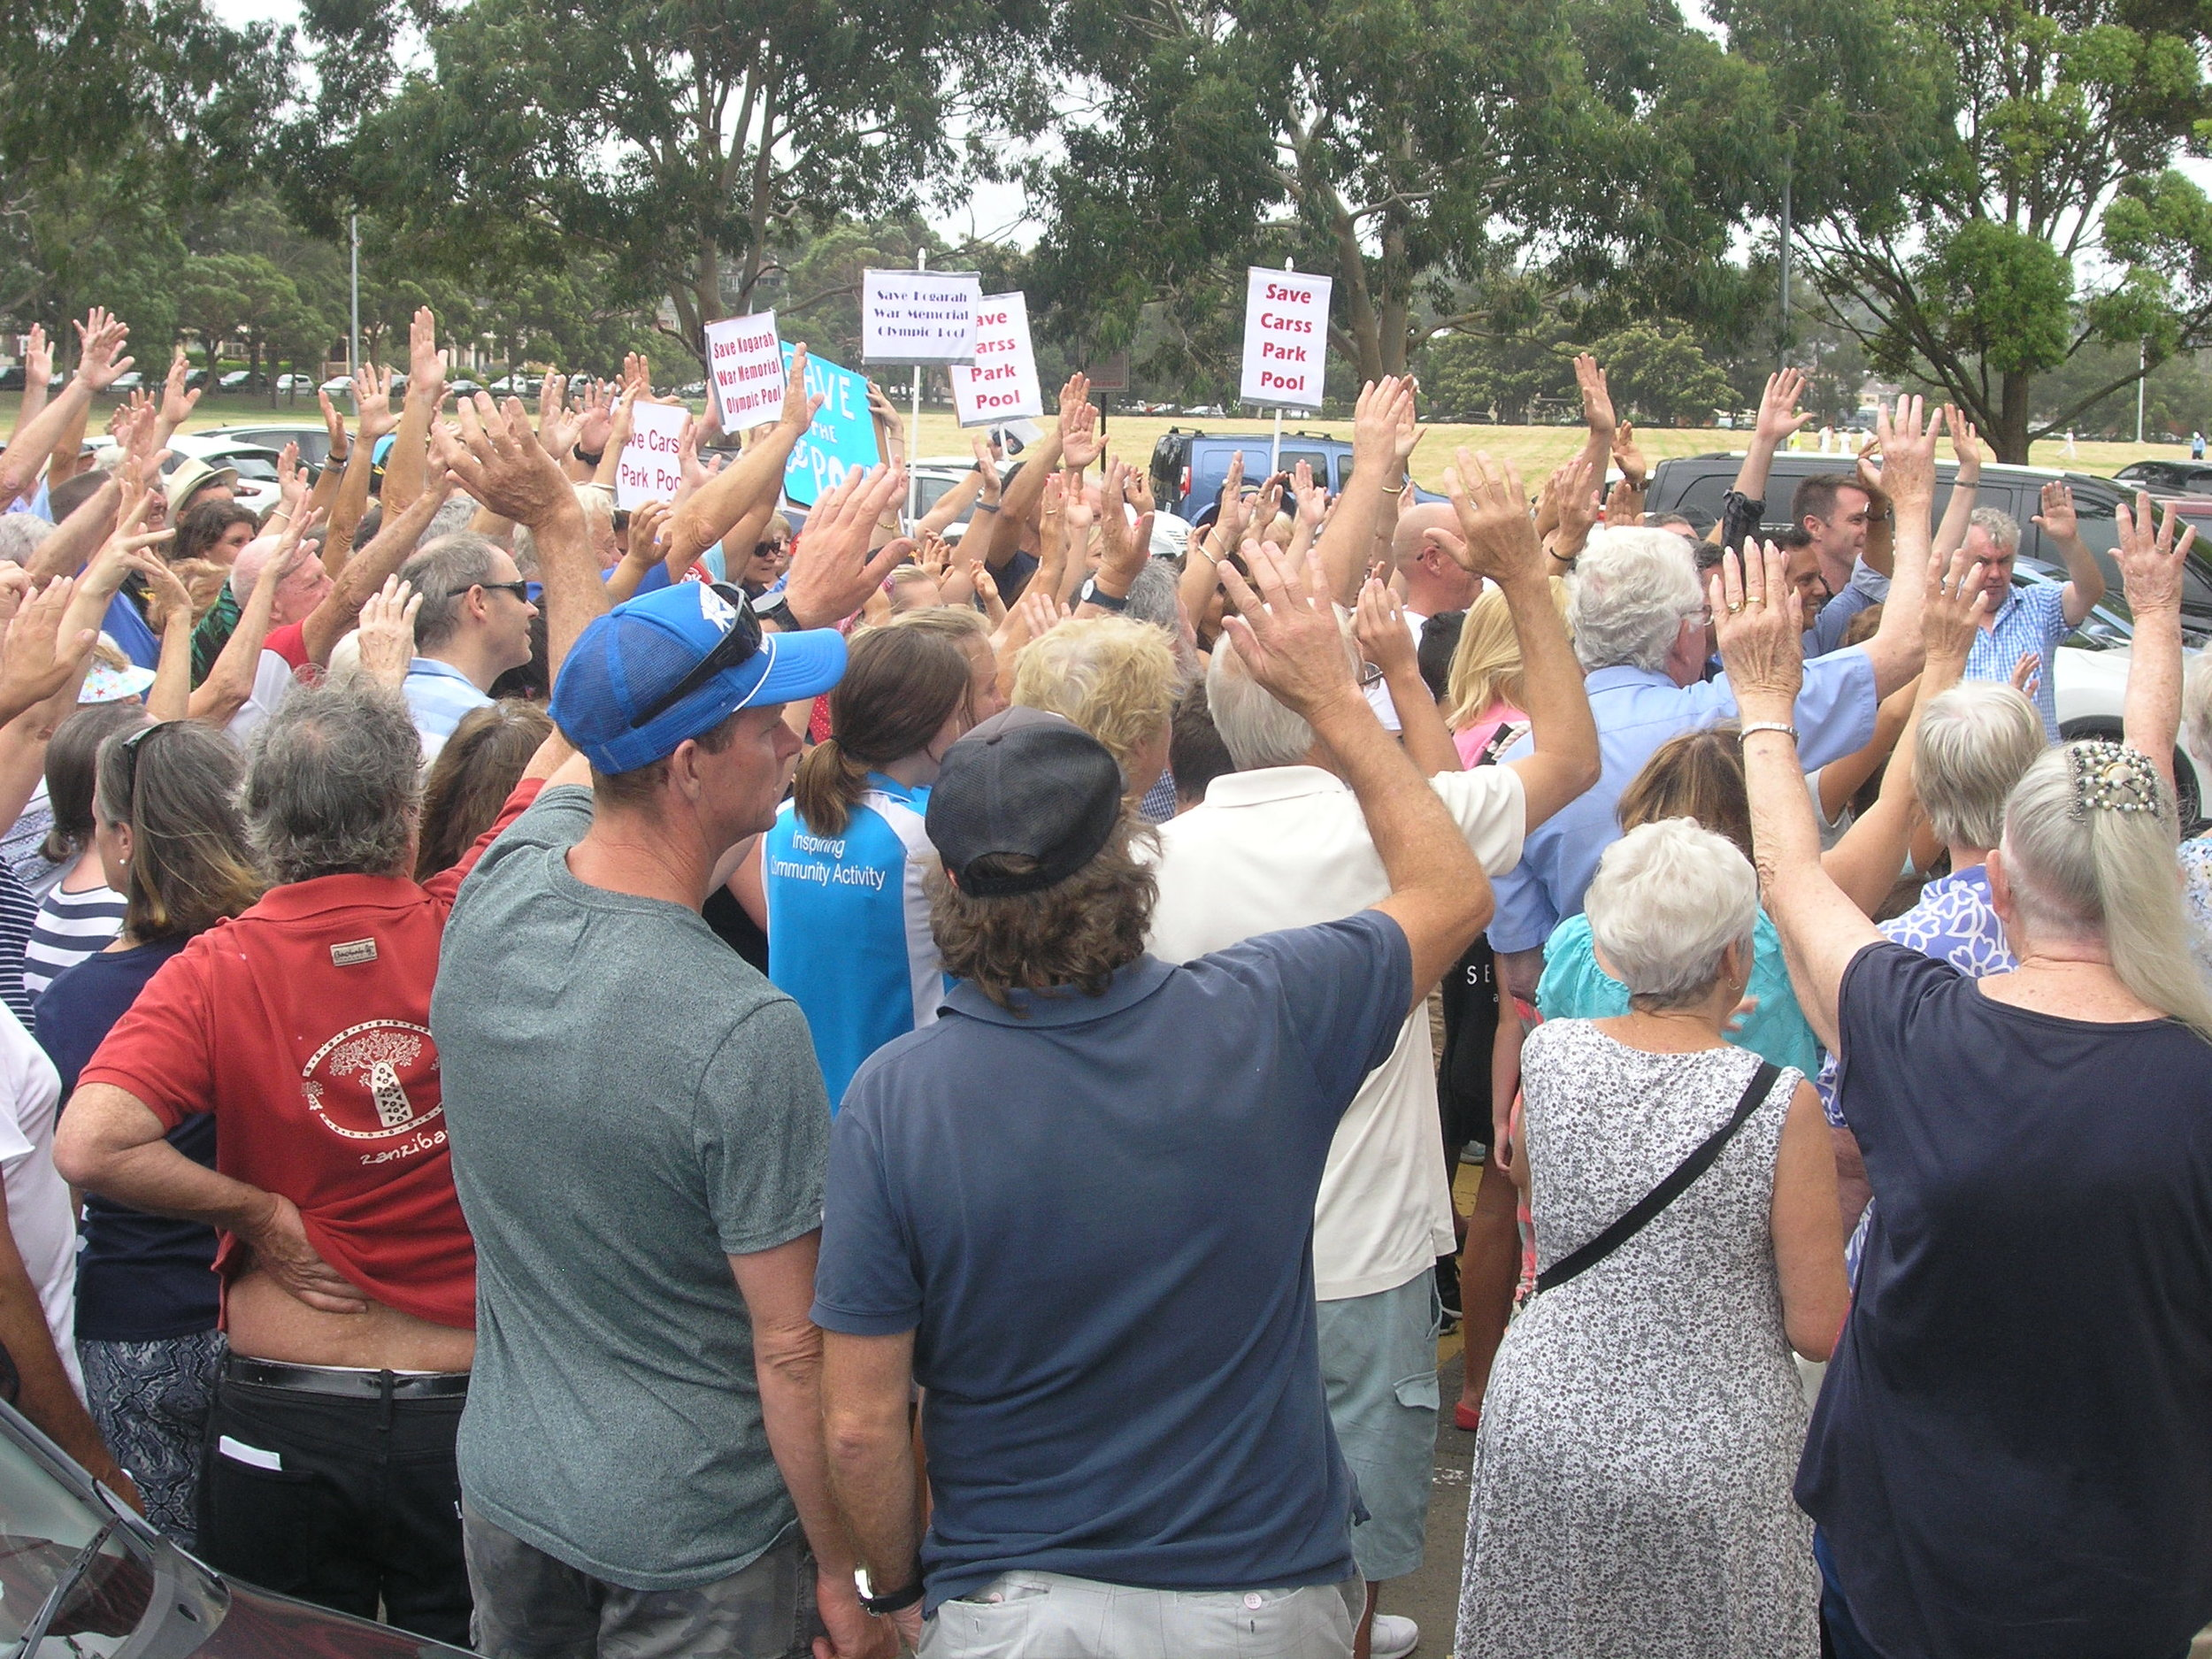 Supporters vote YES to save Carss Park Pool